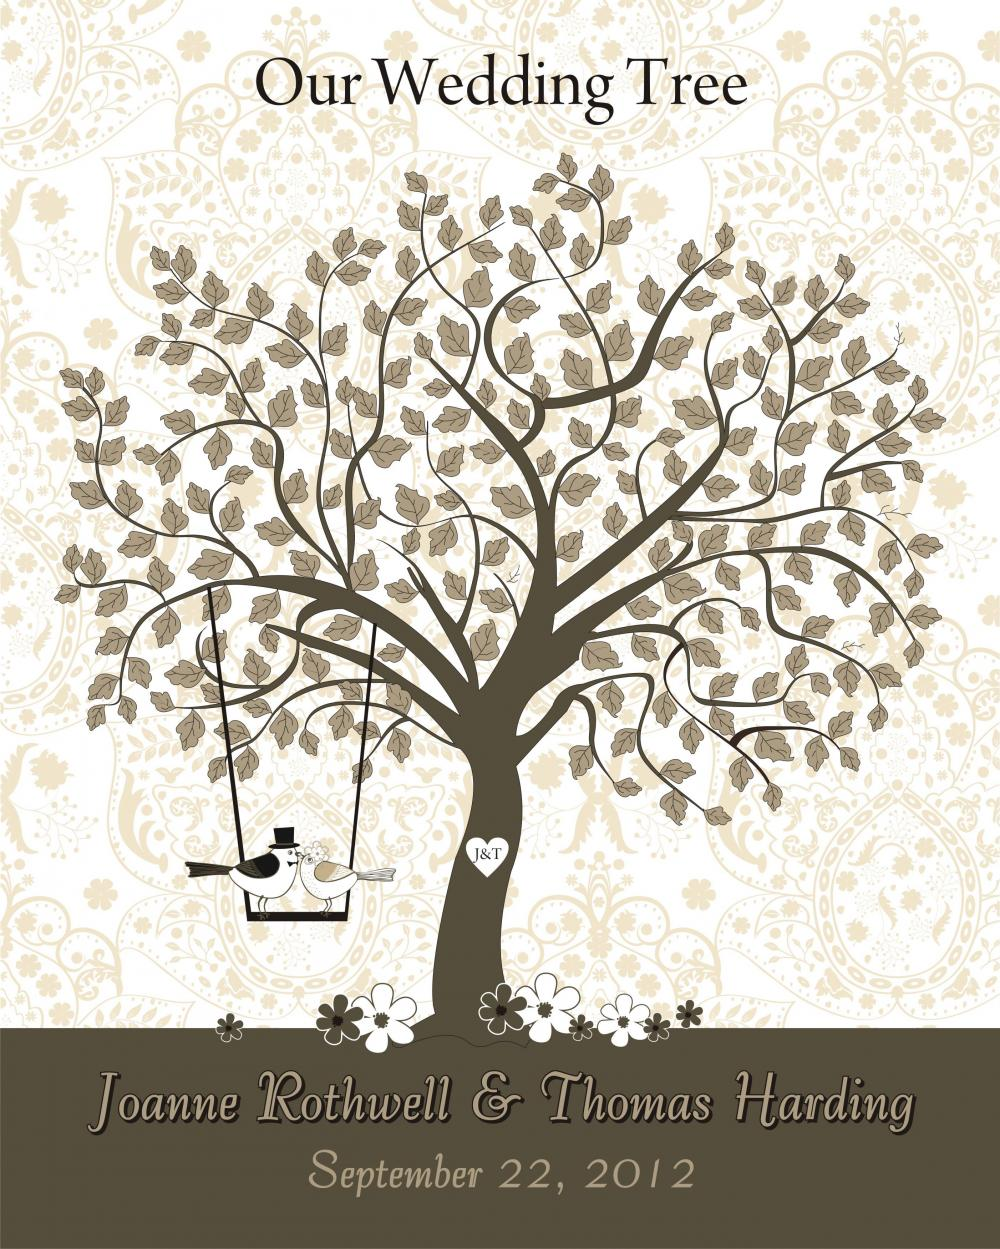 Wedding Guest Signing Tree: Personalized Wedding Signature Guestbook Tree 16x20 On Luulla